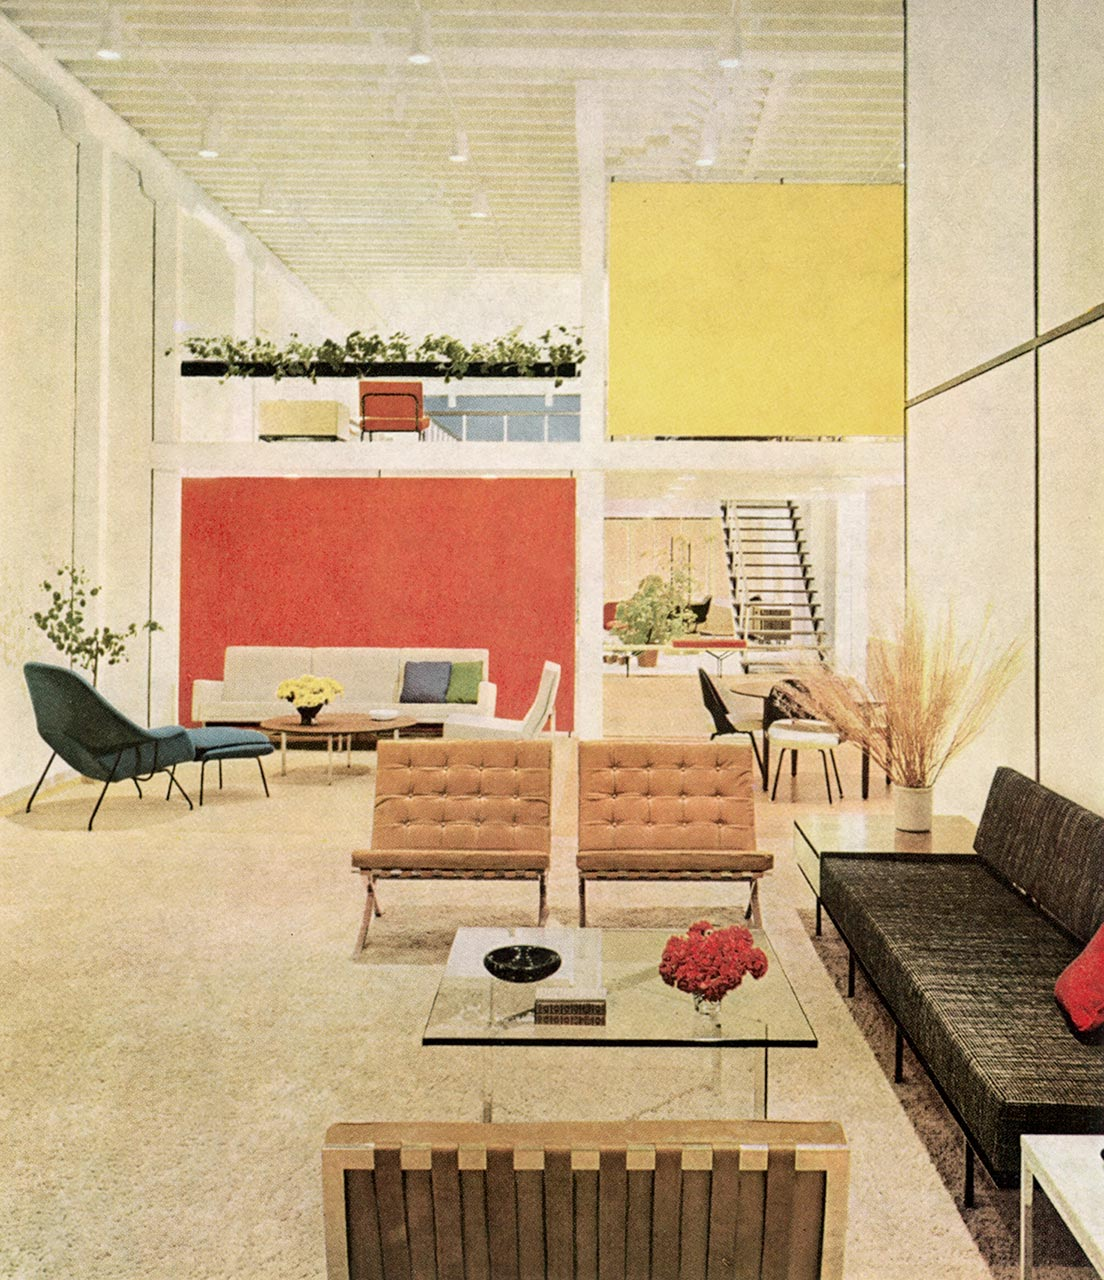 San Francisco showroom - Florence Knoll, the history of a legend